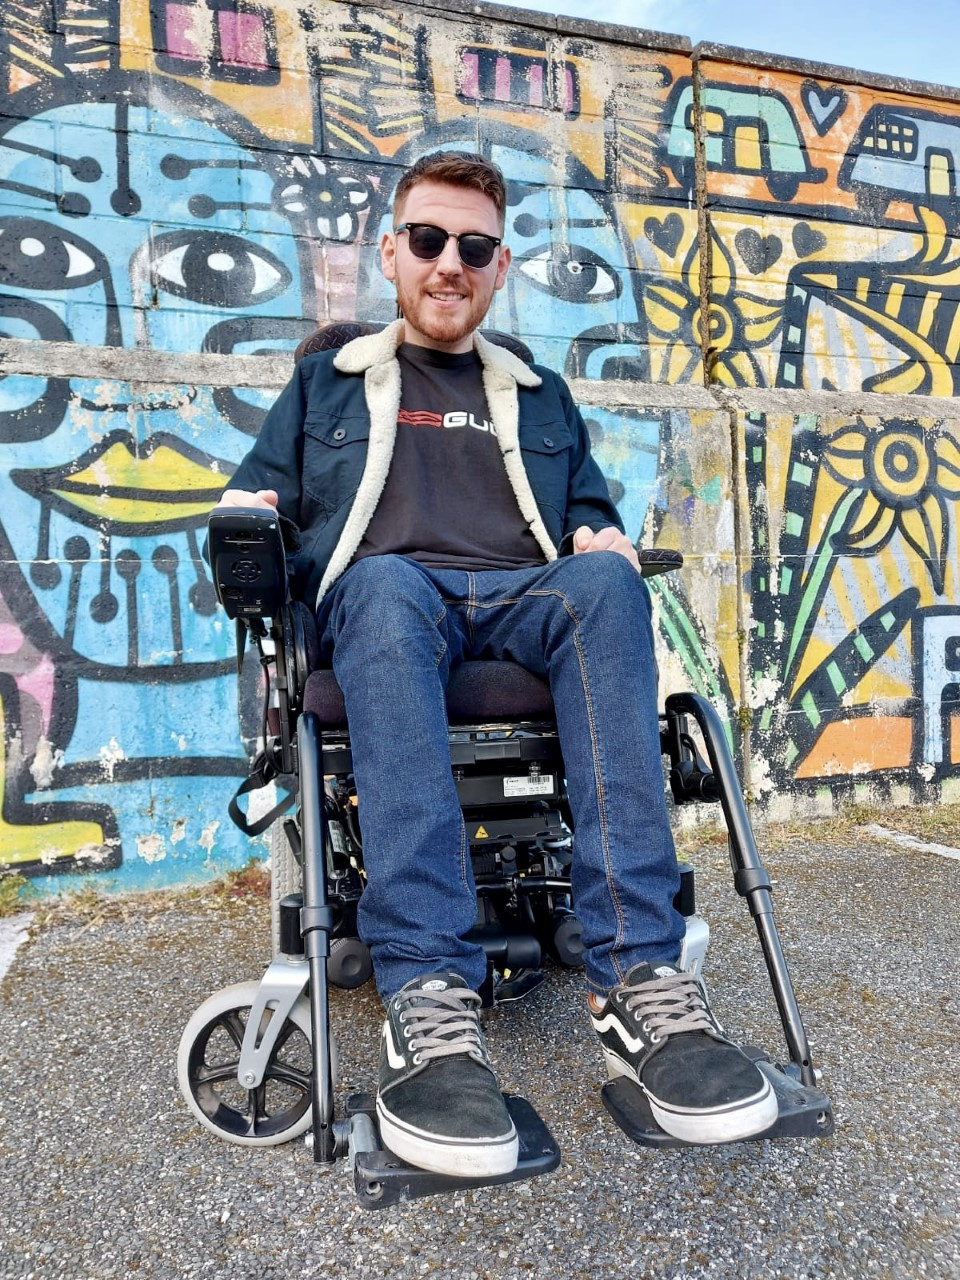 Low down angle of Ross in his wheelchair, sat in front of a multicoloured graffiti wall